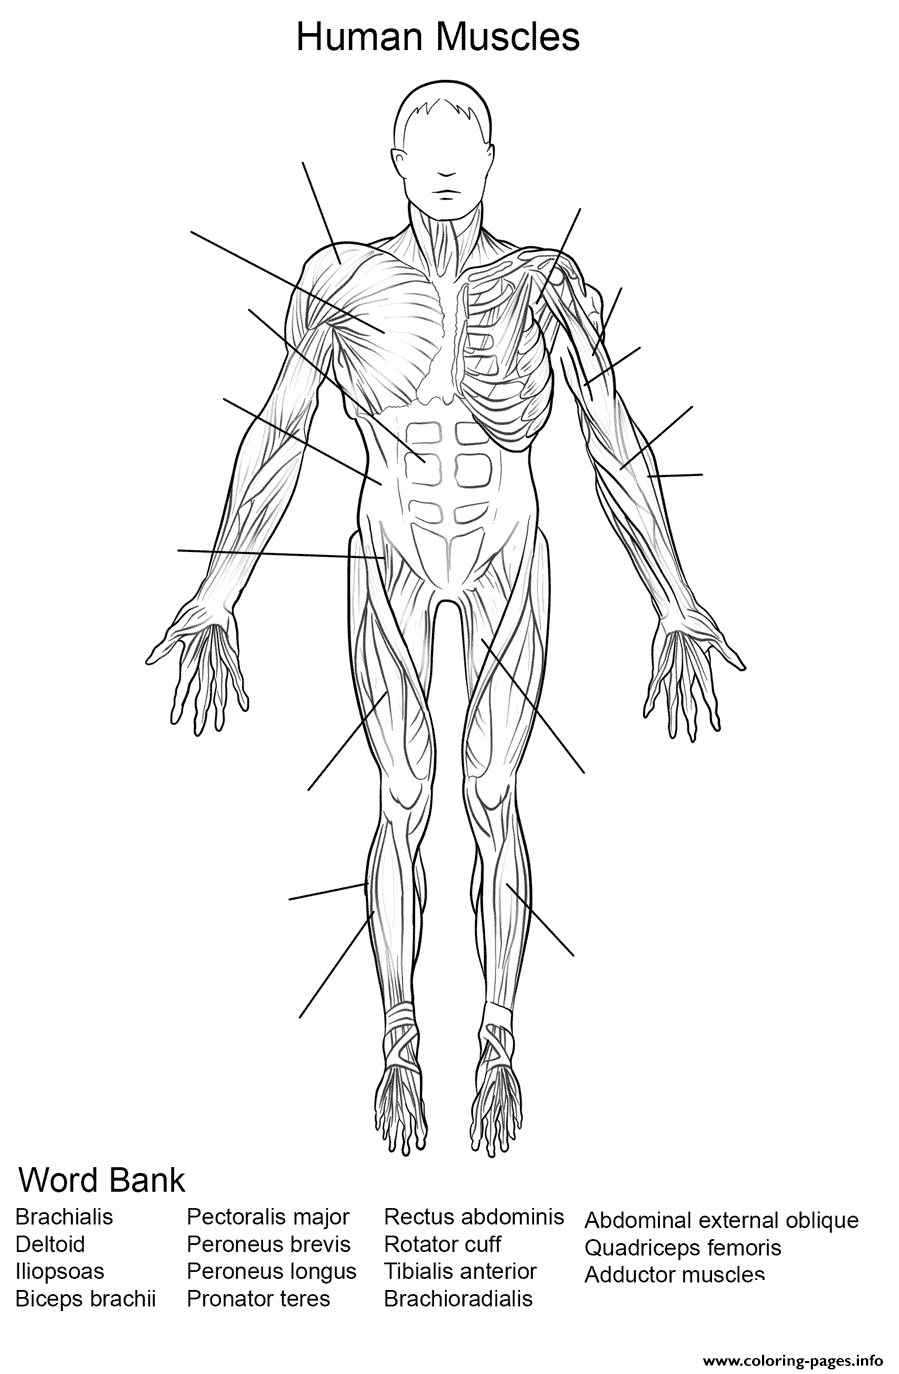 Human Muscles Front View Worksheet Coloring Pages Printable